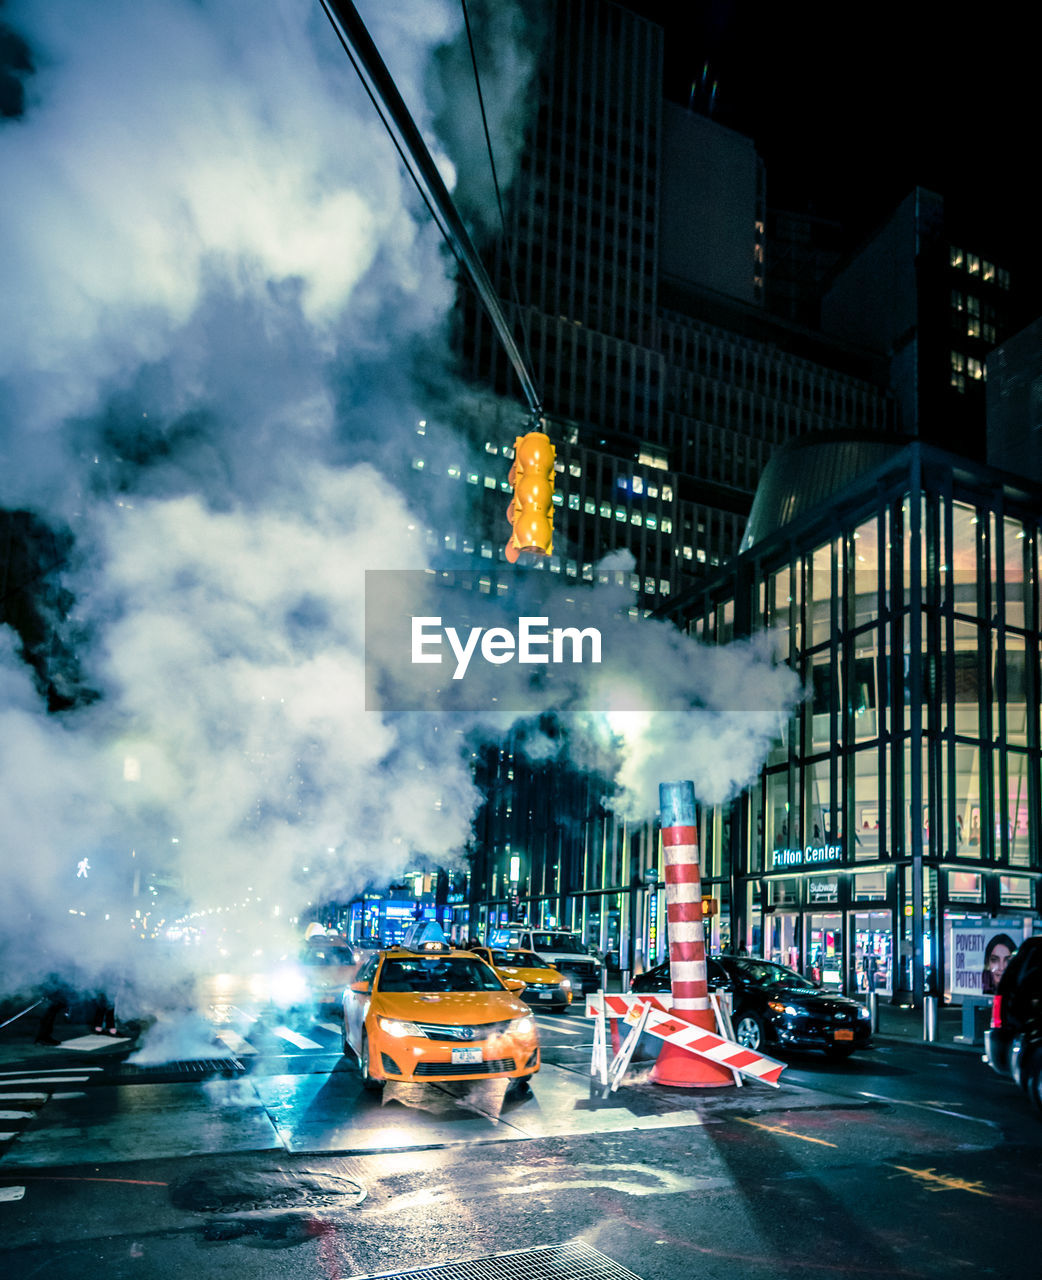 transportation, illuminated, mode of transportation, car, architecture, built structure, land vehicle, city, motion, building exterior, motor vehicle, night, street, road, smoke - physical structure, outdoors, nature, blurred motion, travel, no people, air pollution